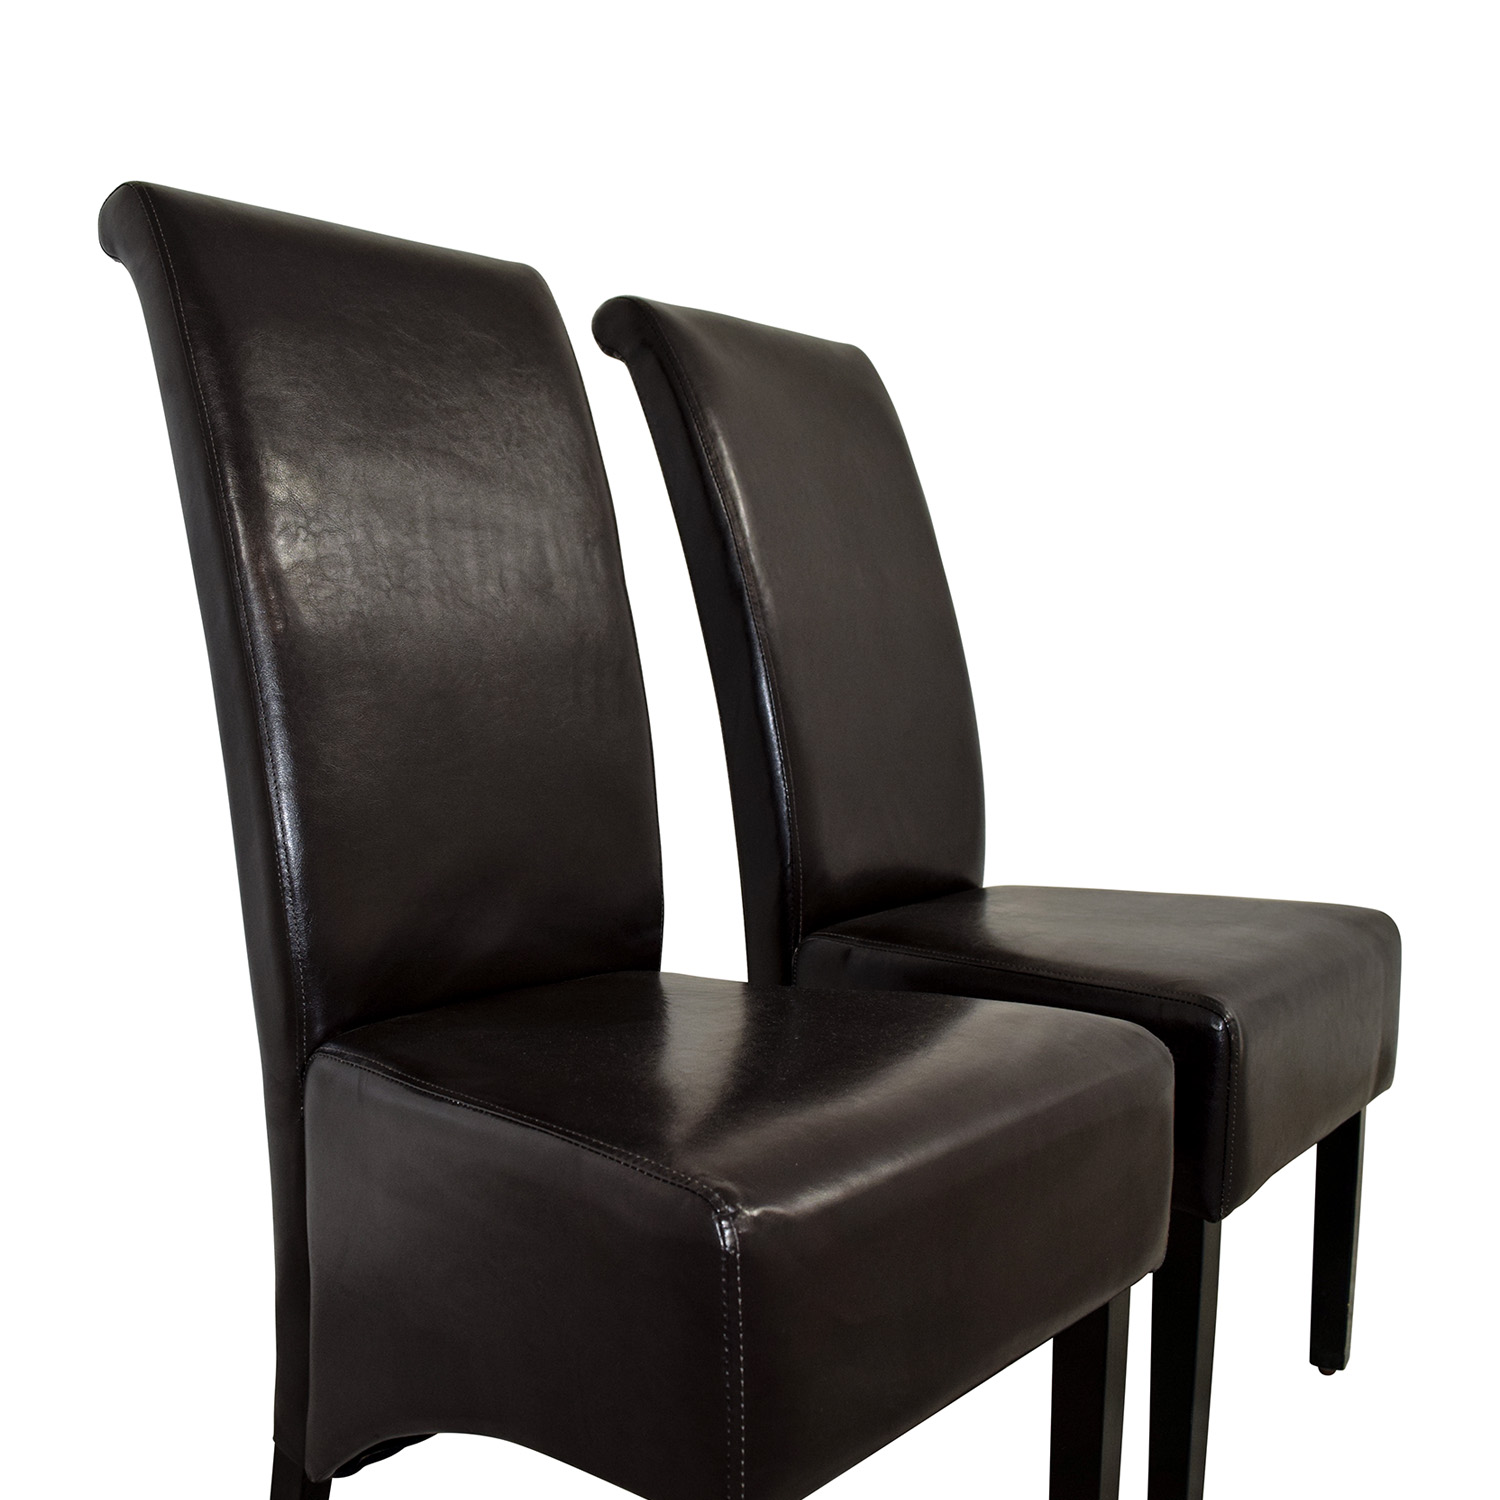 Padded Brown Leatherette High Back Dining Chairs